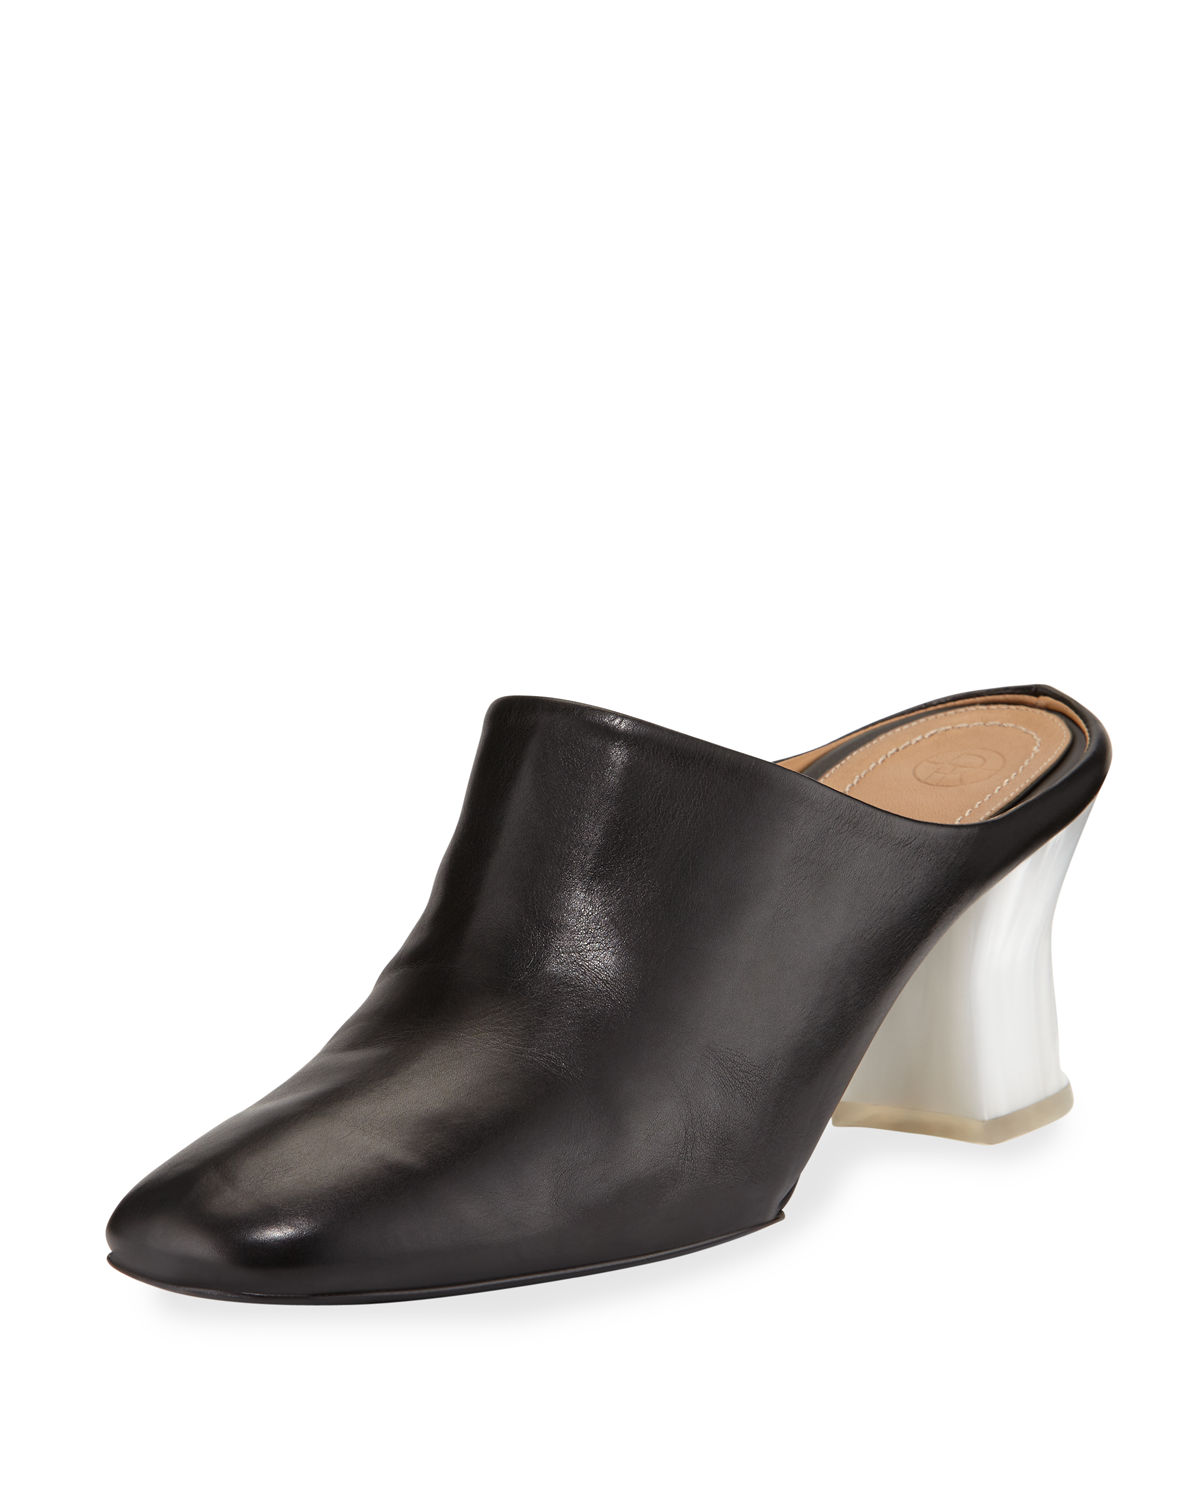 Adela Leather Block-Heel Mule, Black/White